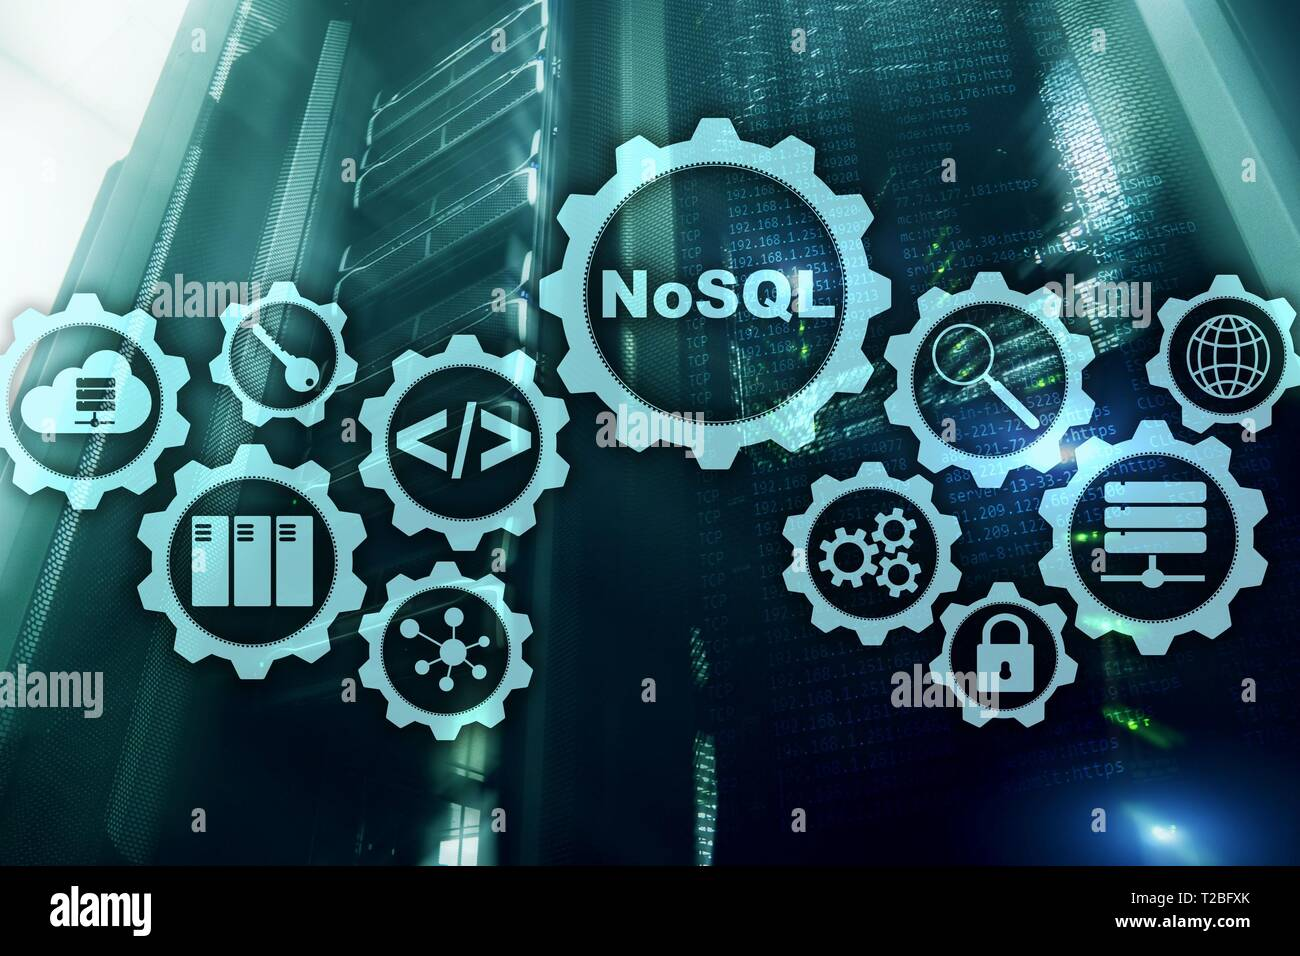 NoSQL. Structured Query Language. Database Technology Concept. Server room background. - Stock Image